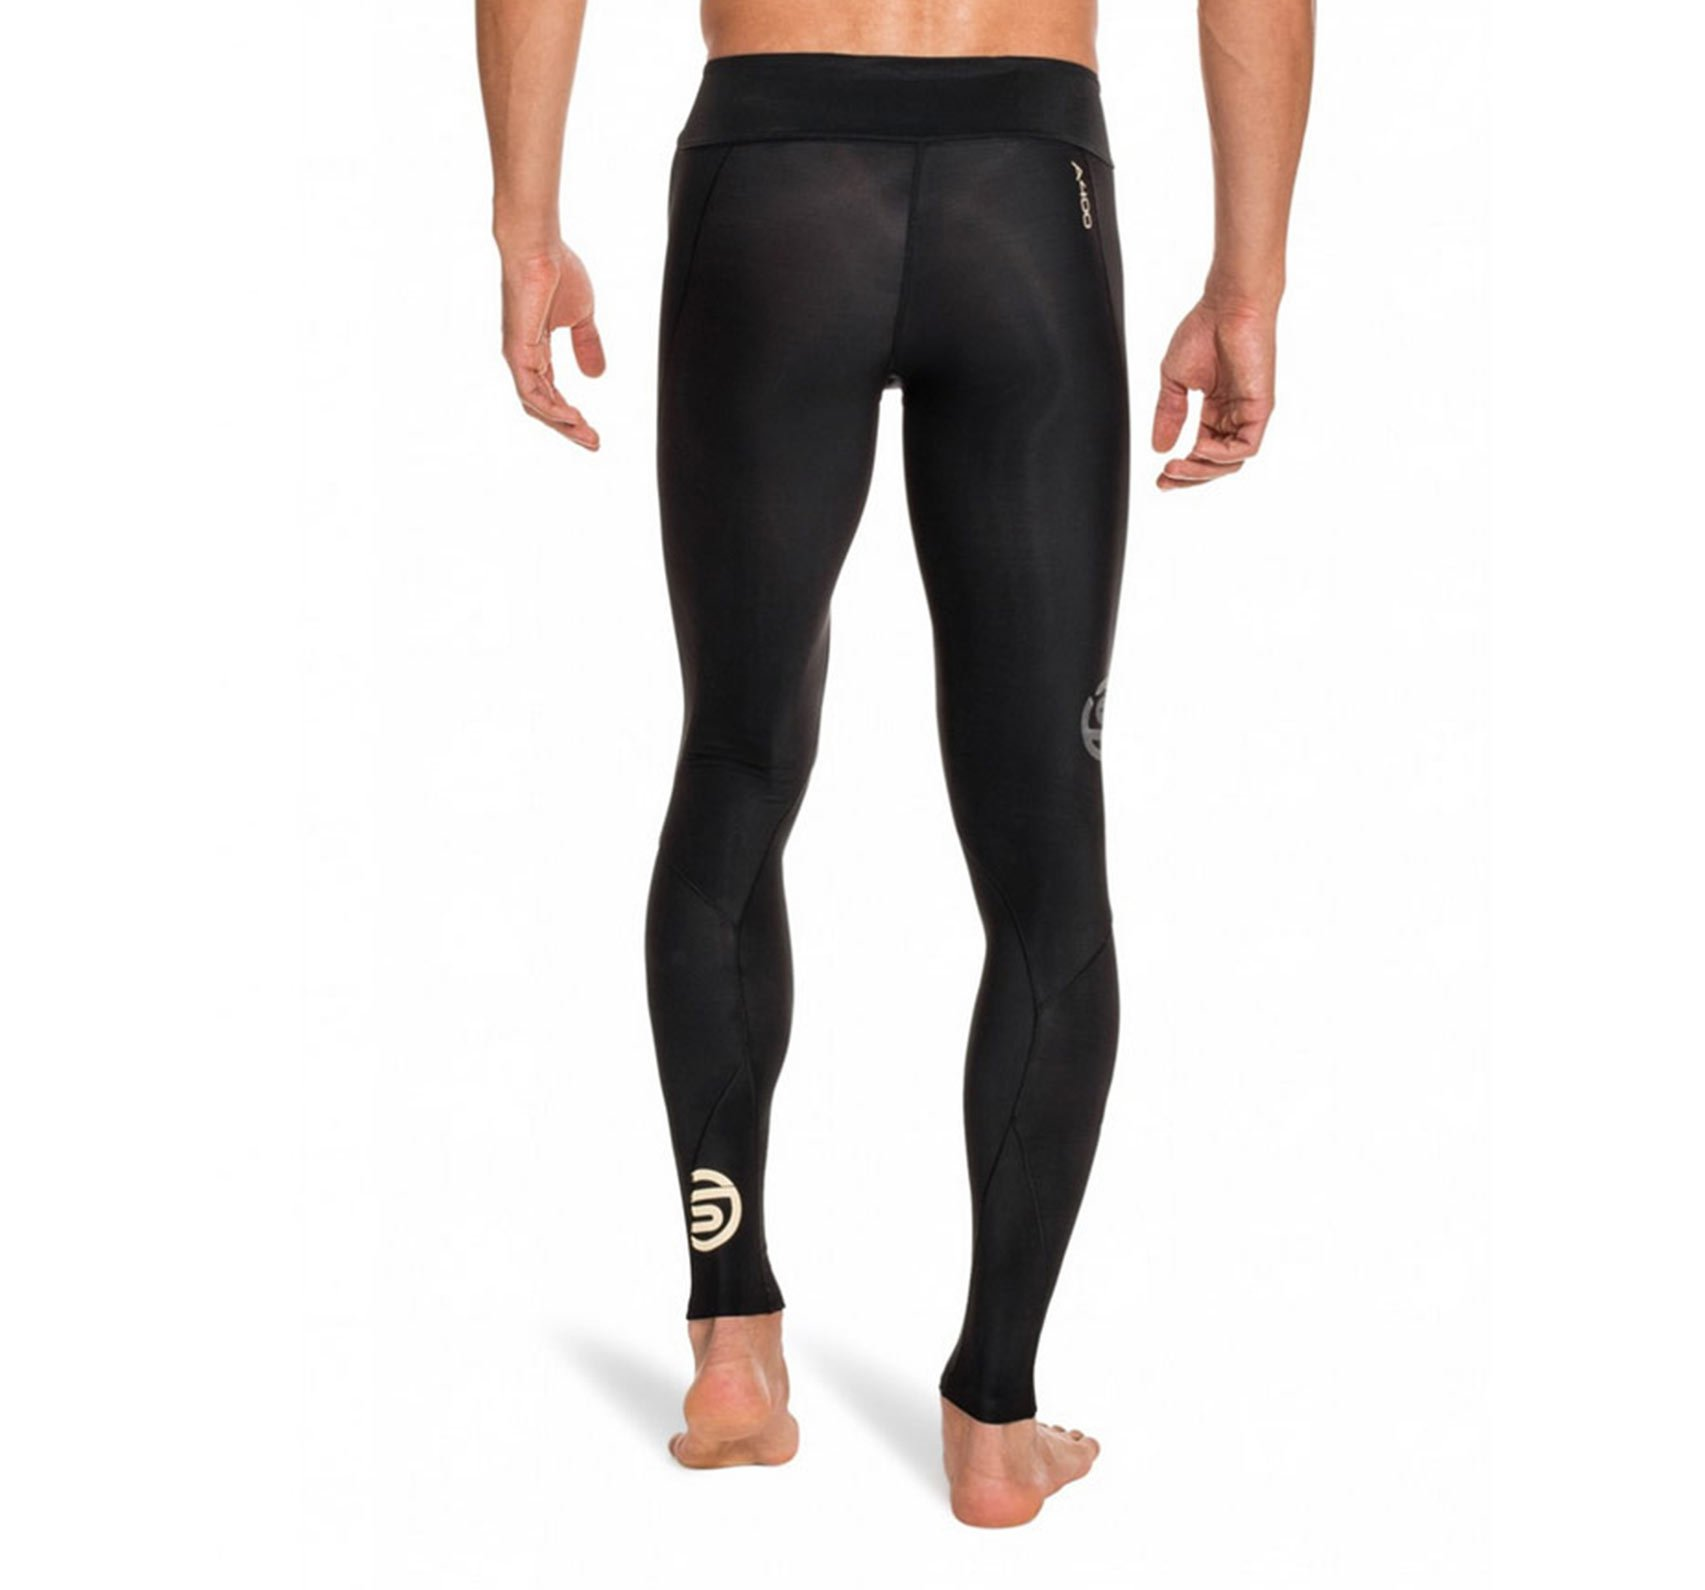 Skins Men's A400 Compression Long Tights, Black/Gold, XX-Large by Skins (Image #3)